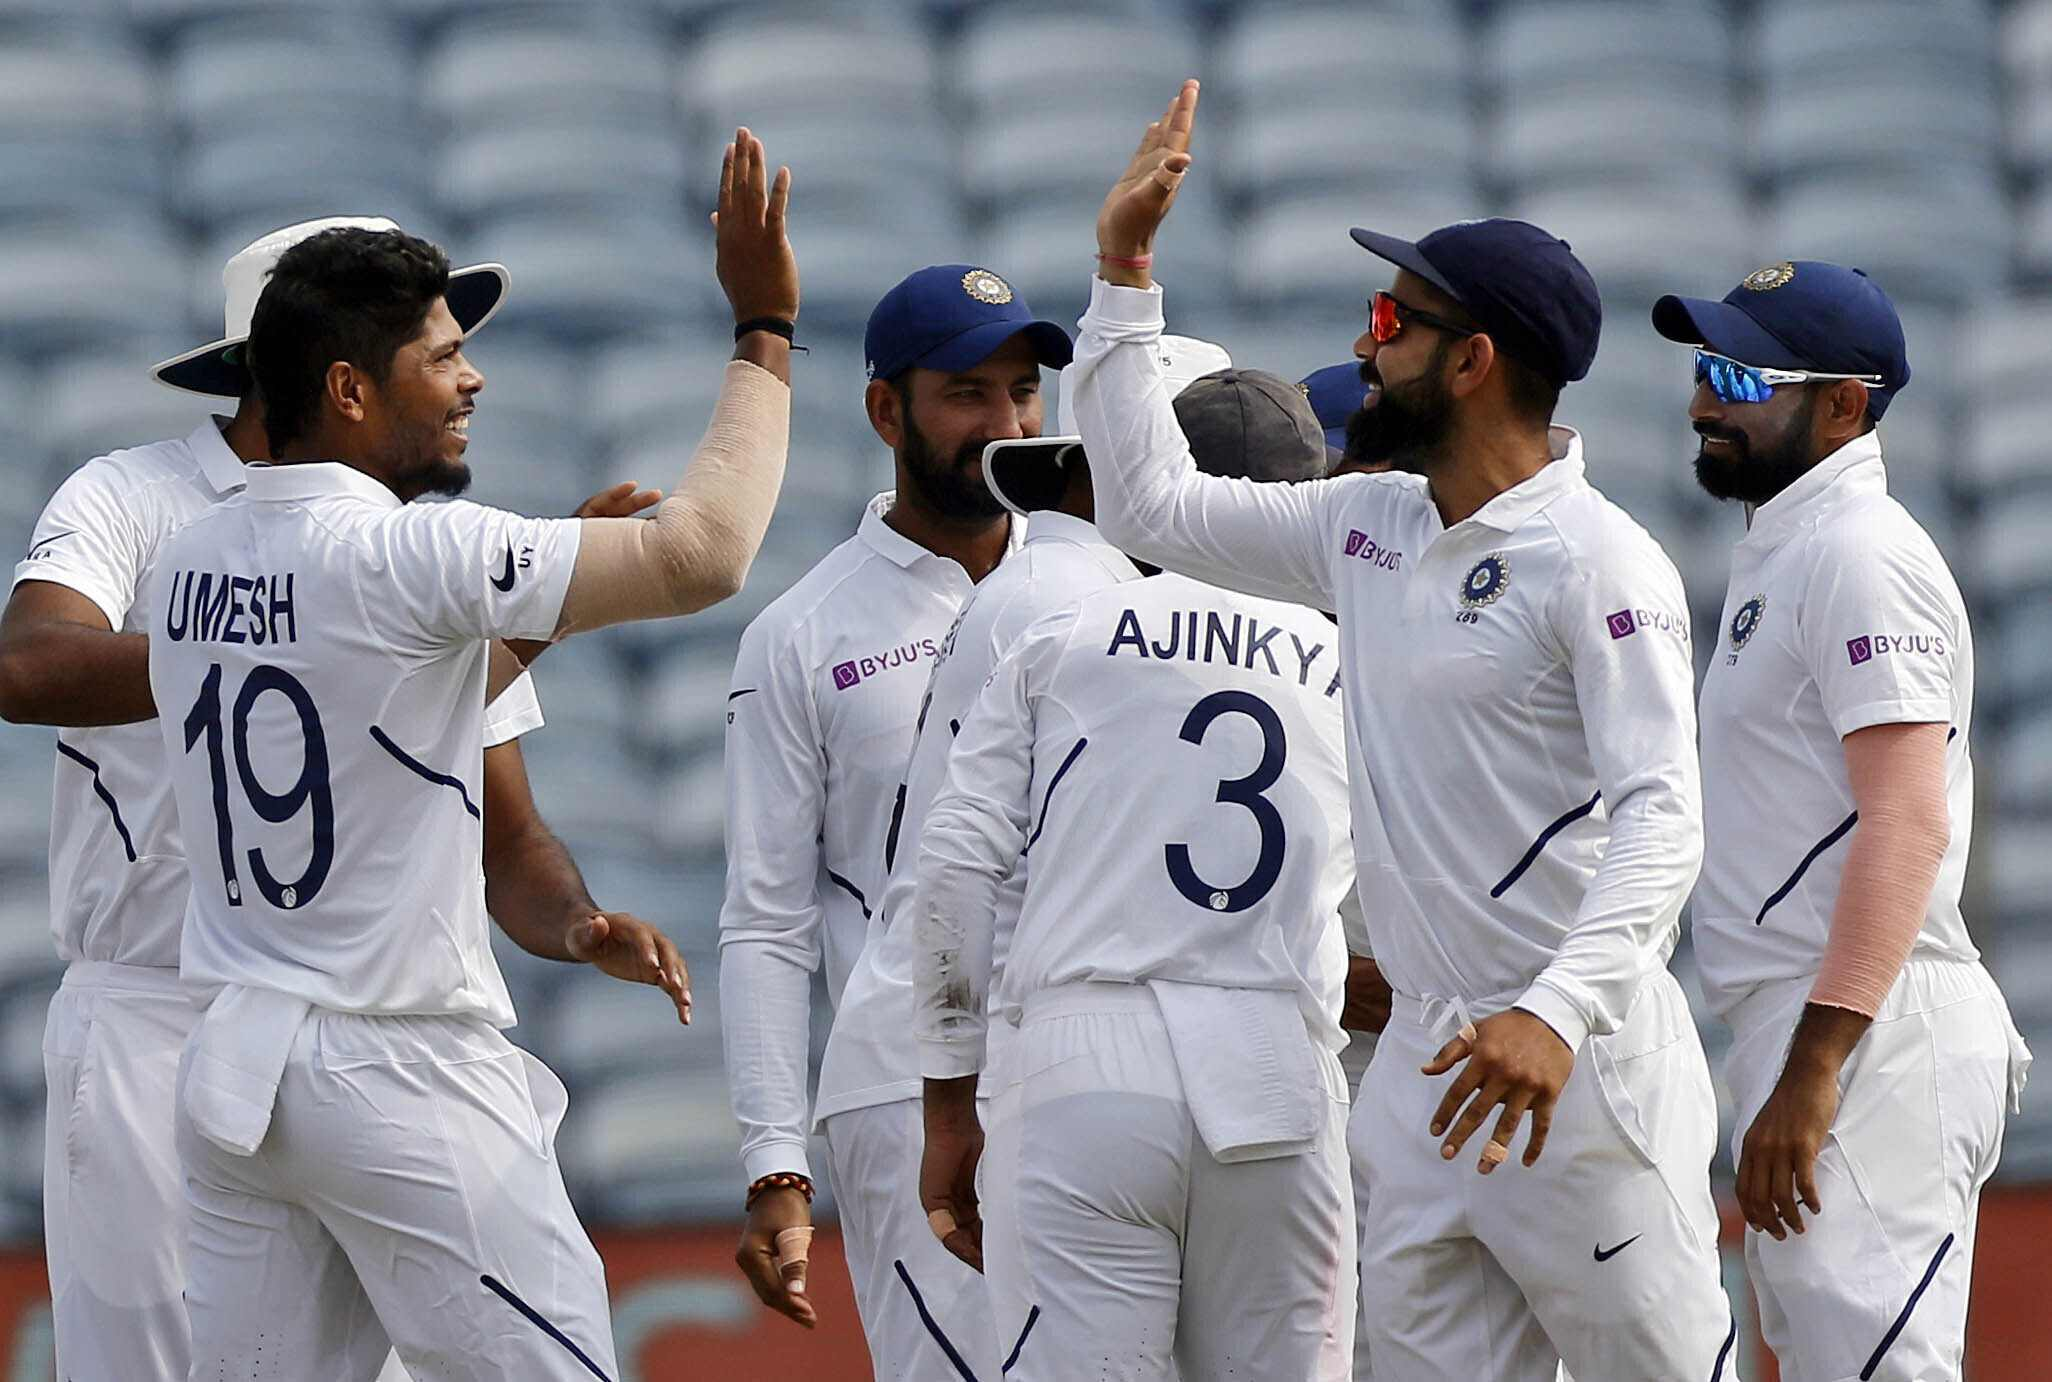 India thrash South Africa to register record-breaking 11th consecutive home series win